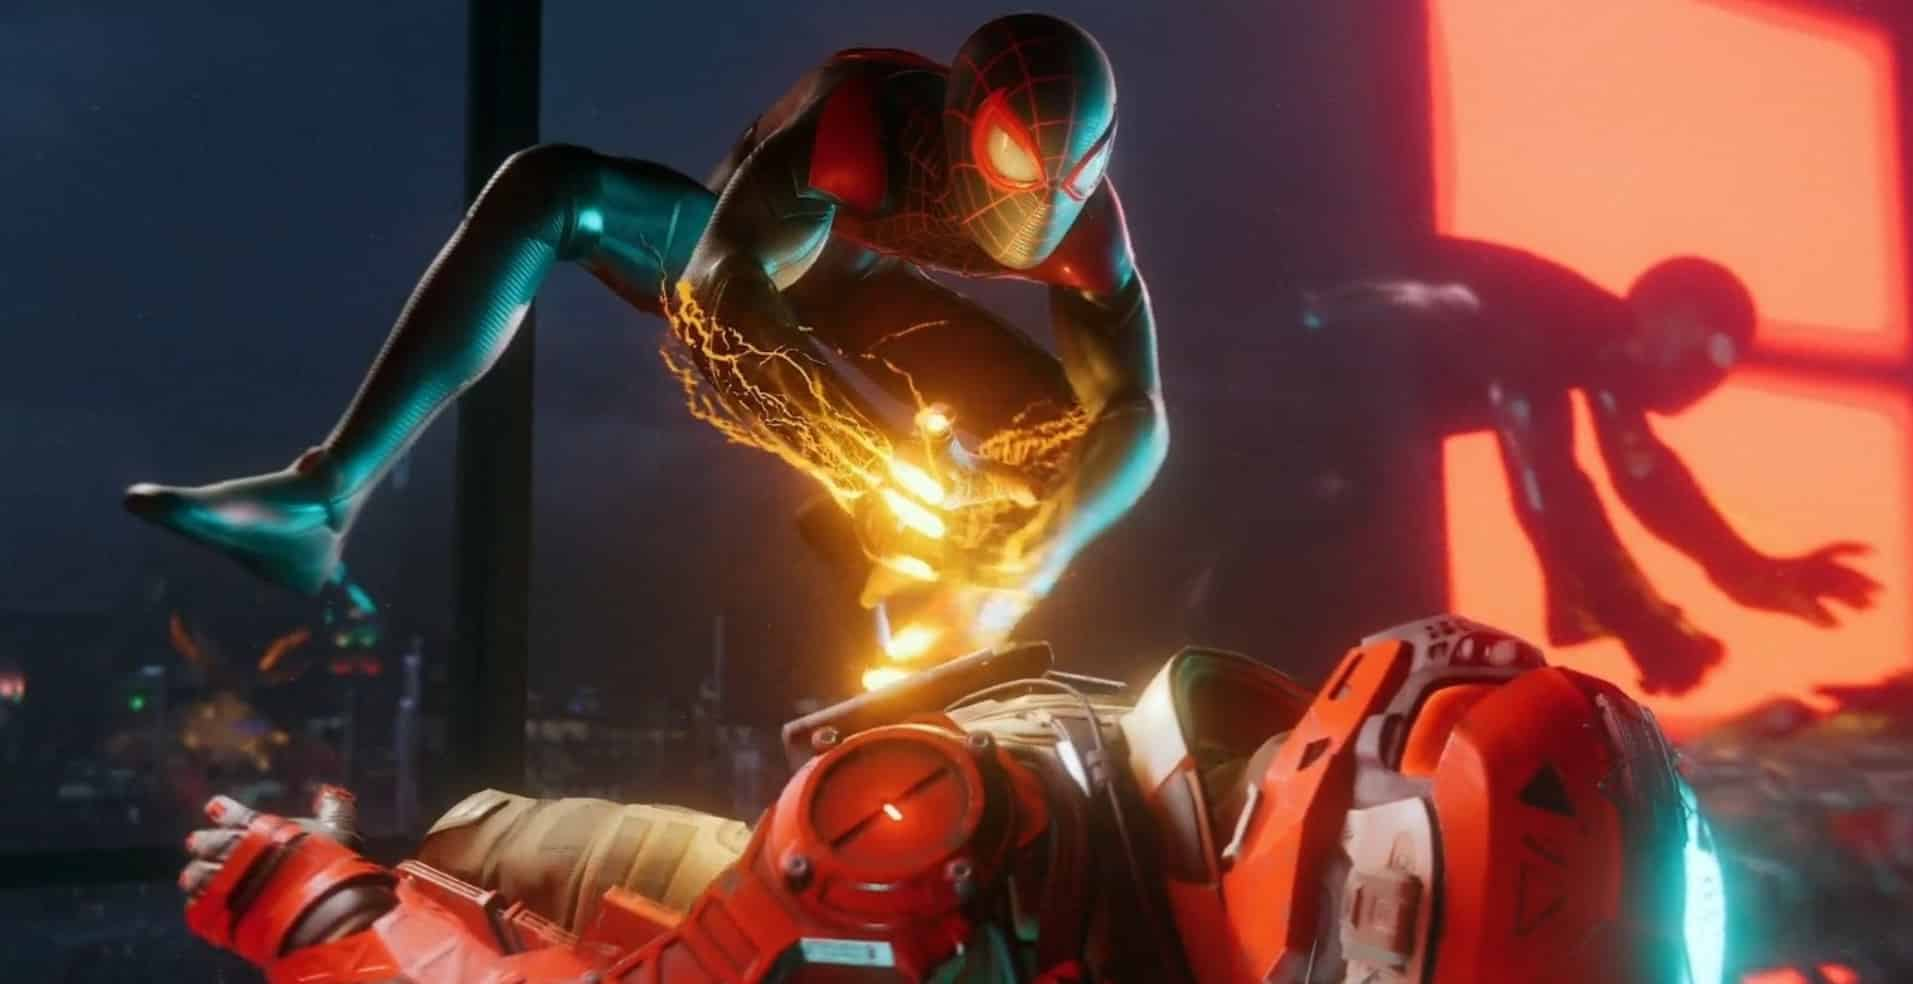 Spider-Man: Miles Morales Marvel PlayStation 5 PS5 holiday 2020 release date